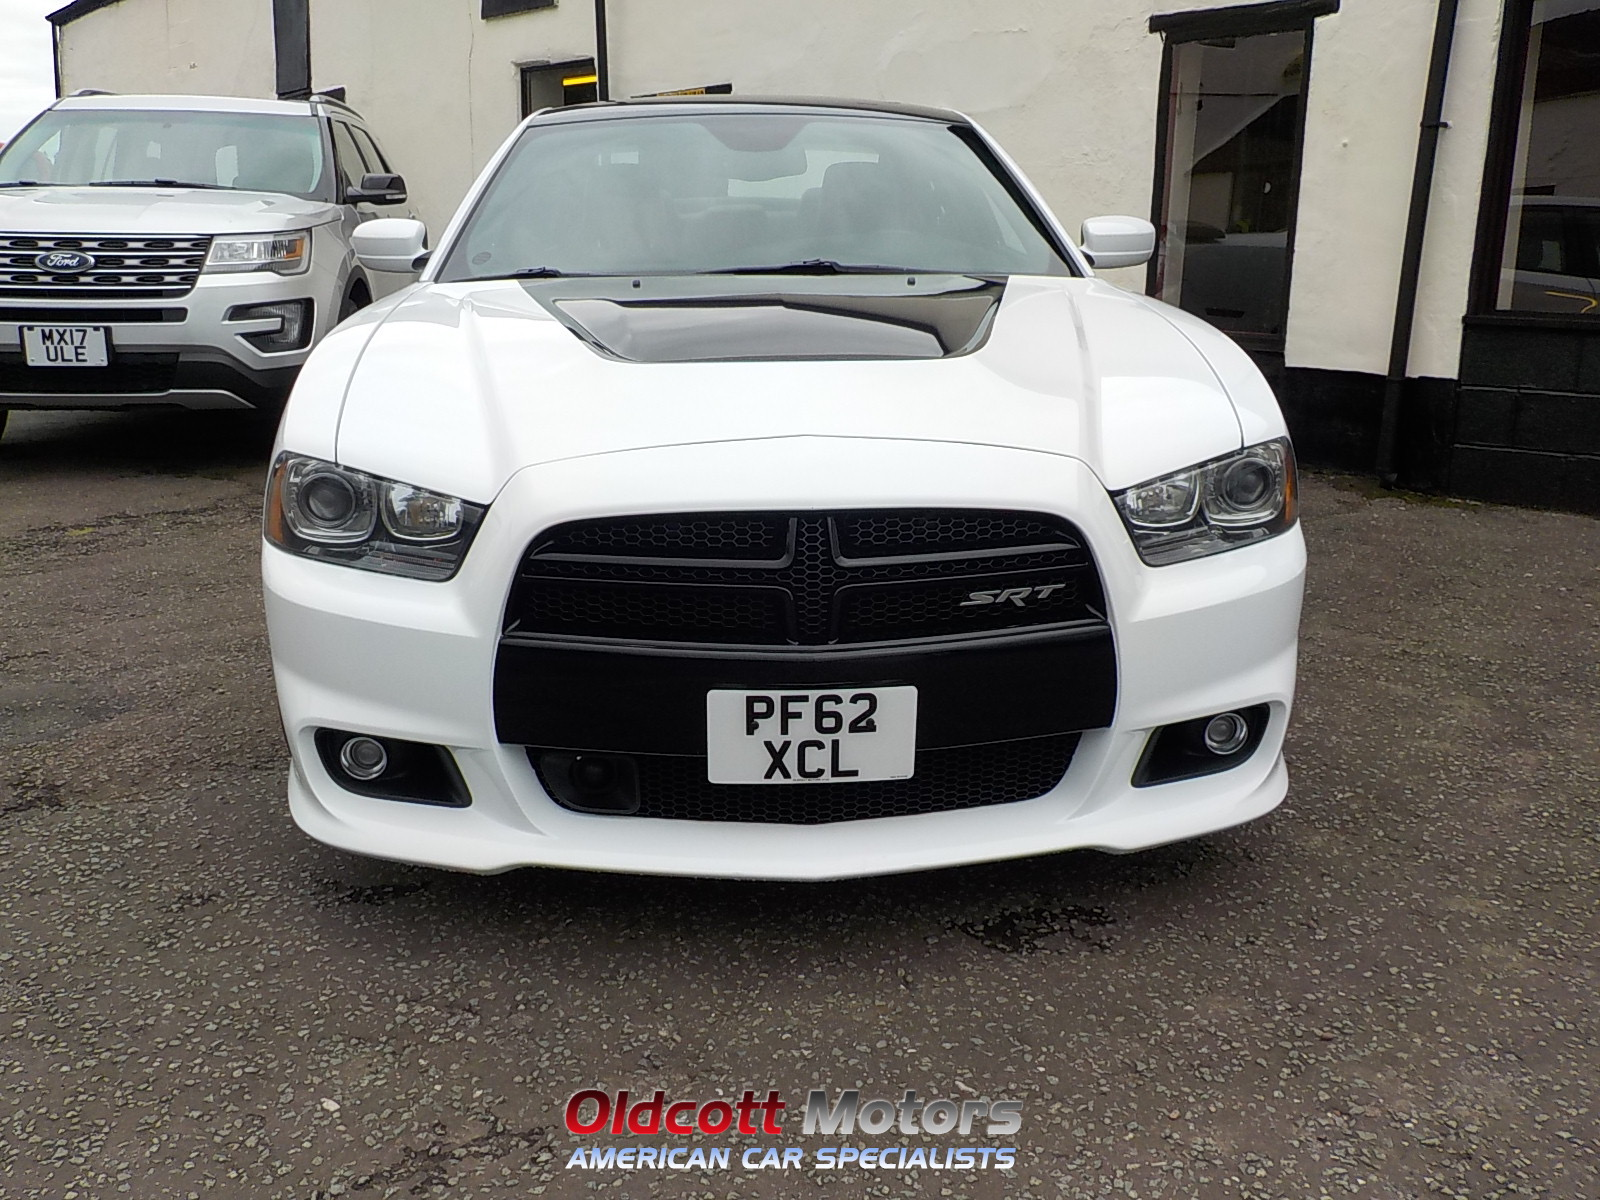 2016 Dodge Charger Whitedscn0772 Oldcott Motors